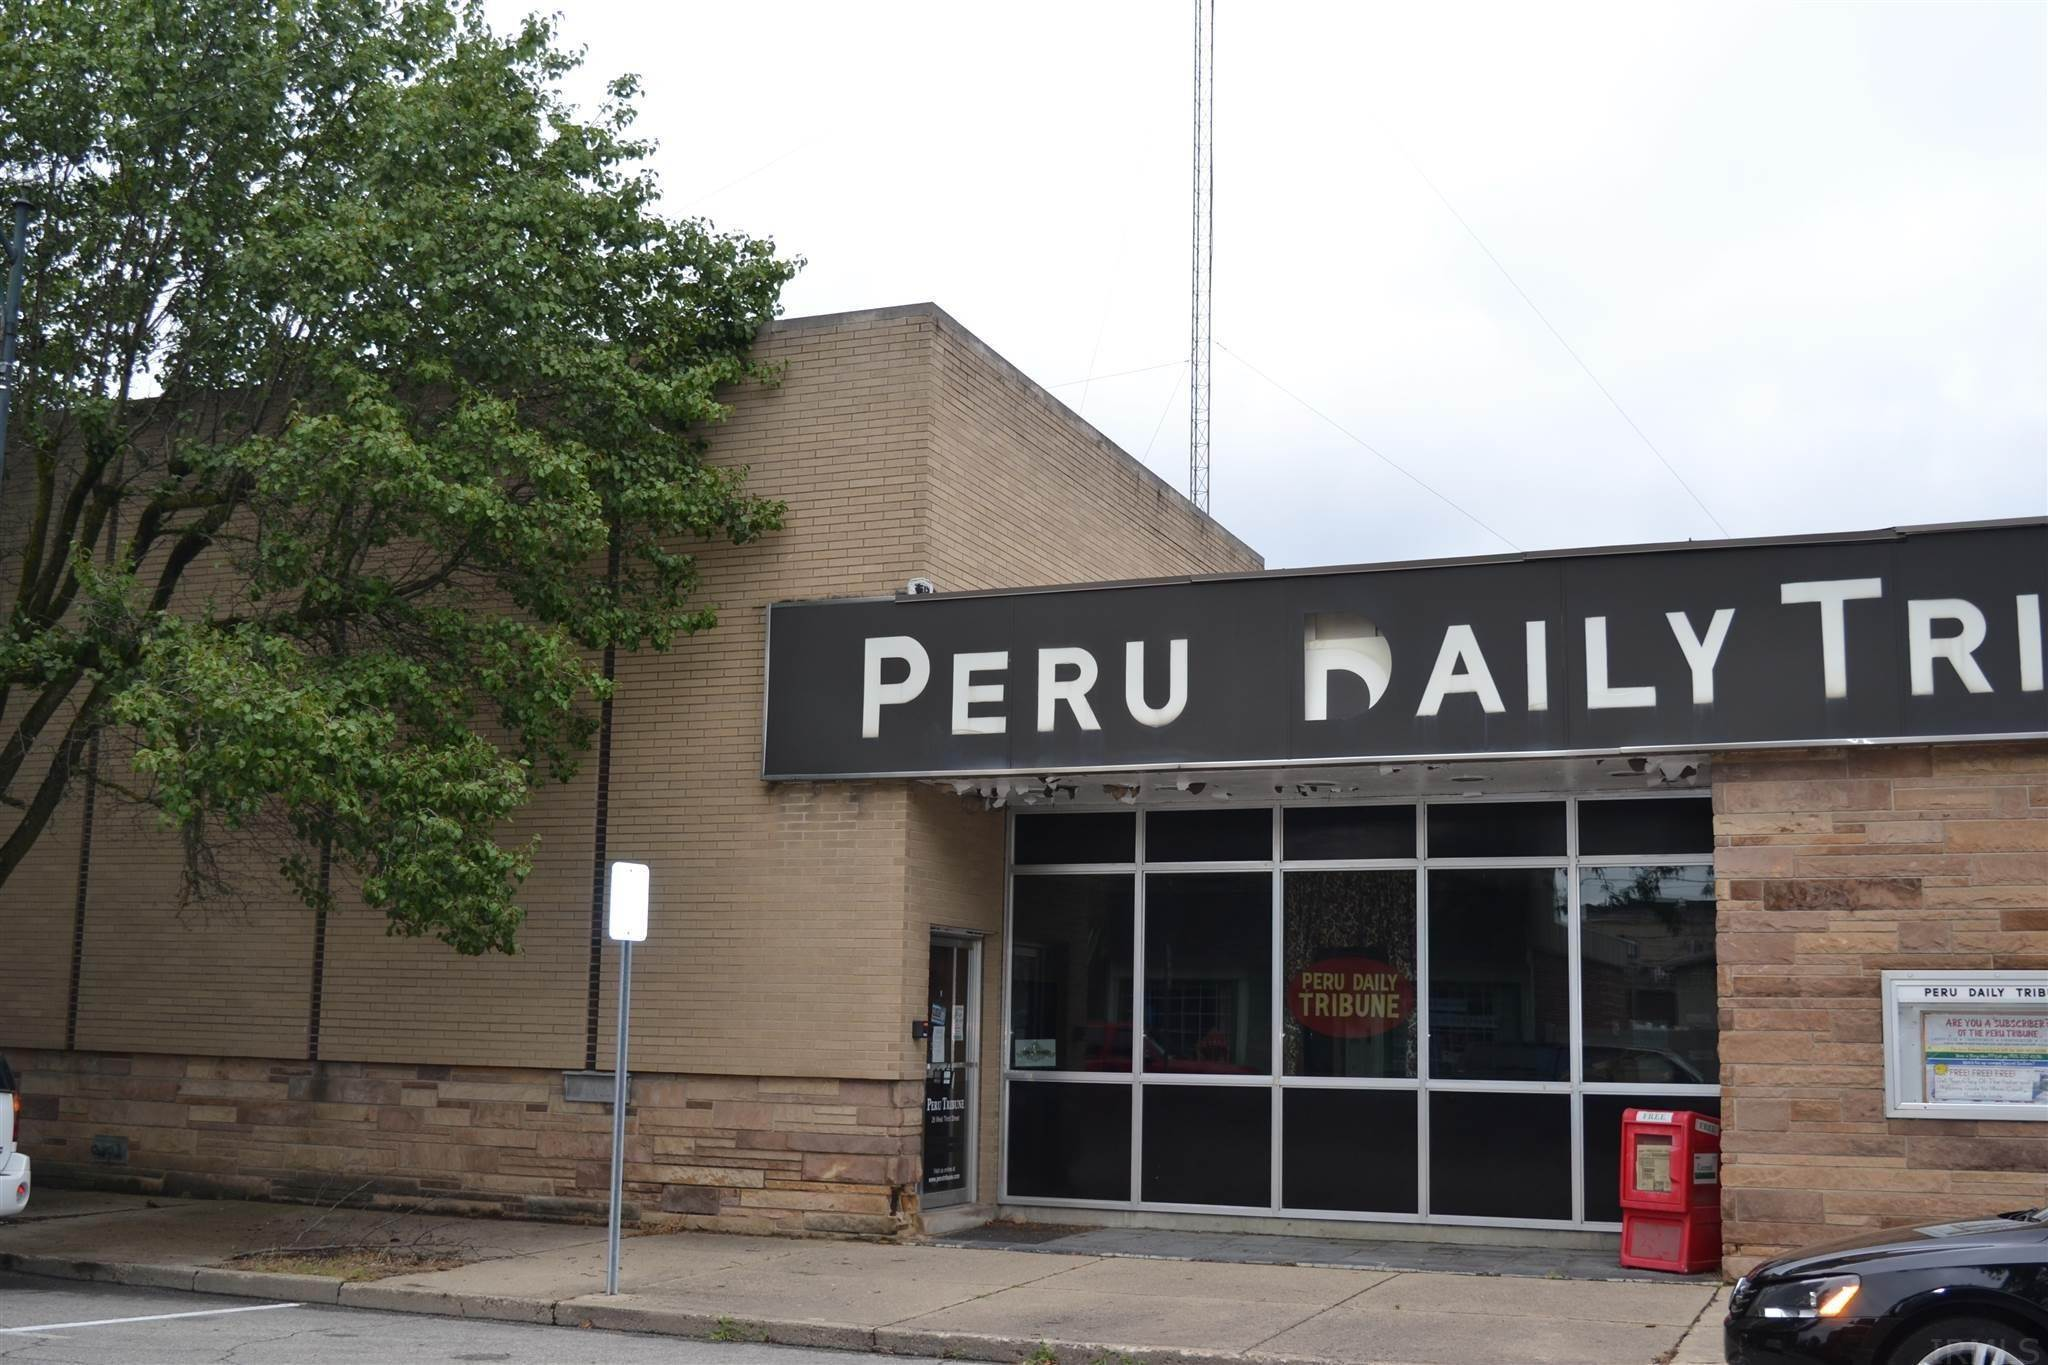 Commercial for Sale at 26 W 3rd Street Peru, Indiana 46970 United States